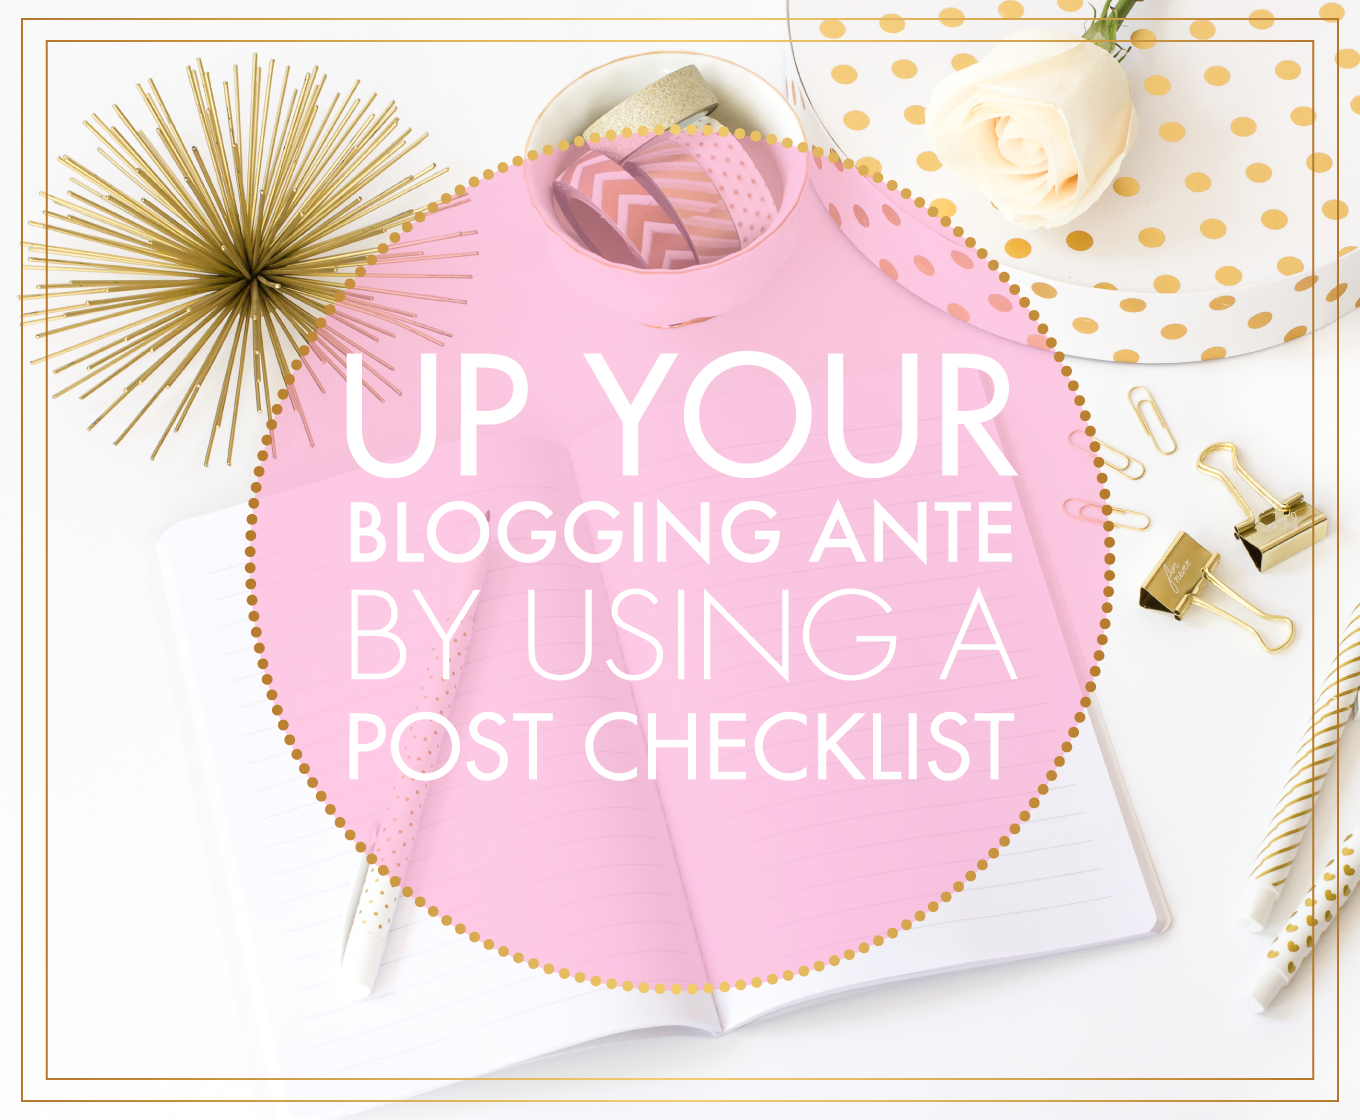 Up Your Blogging Ante By Utilizing A Post Checklist